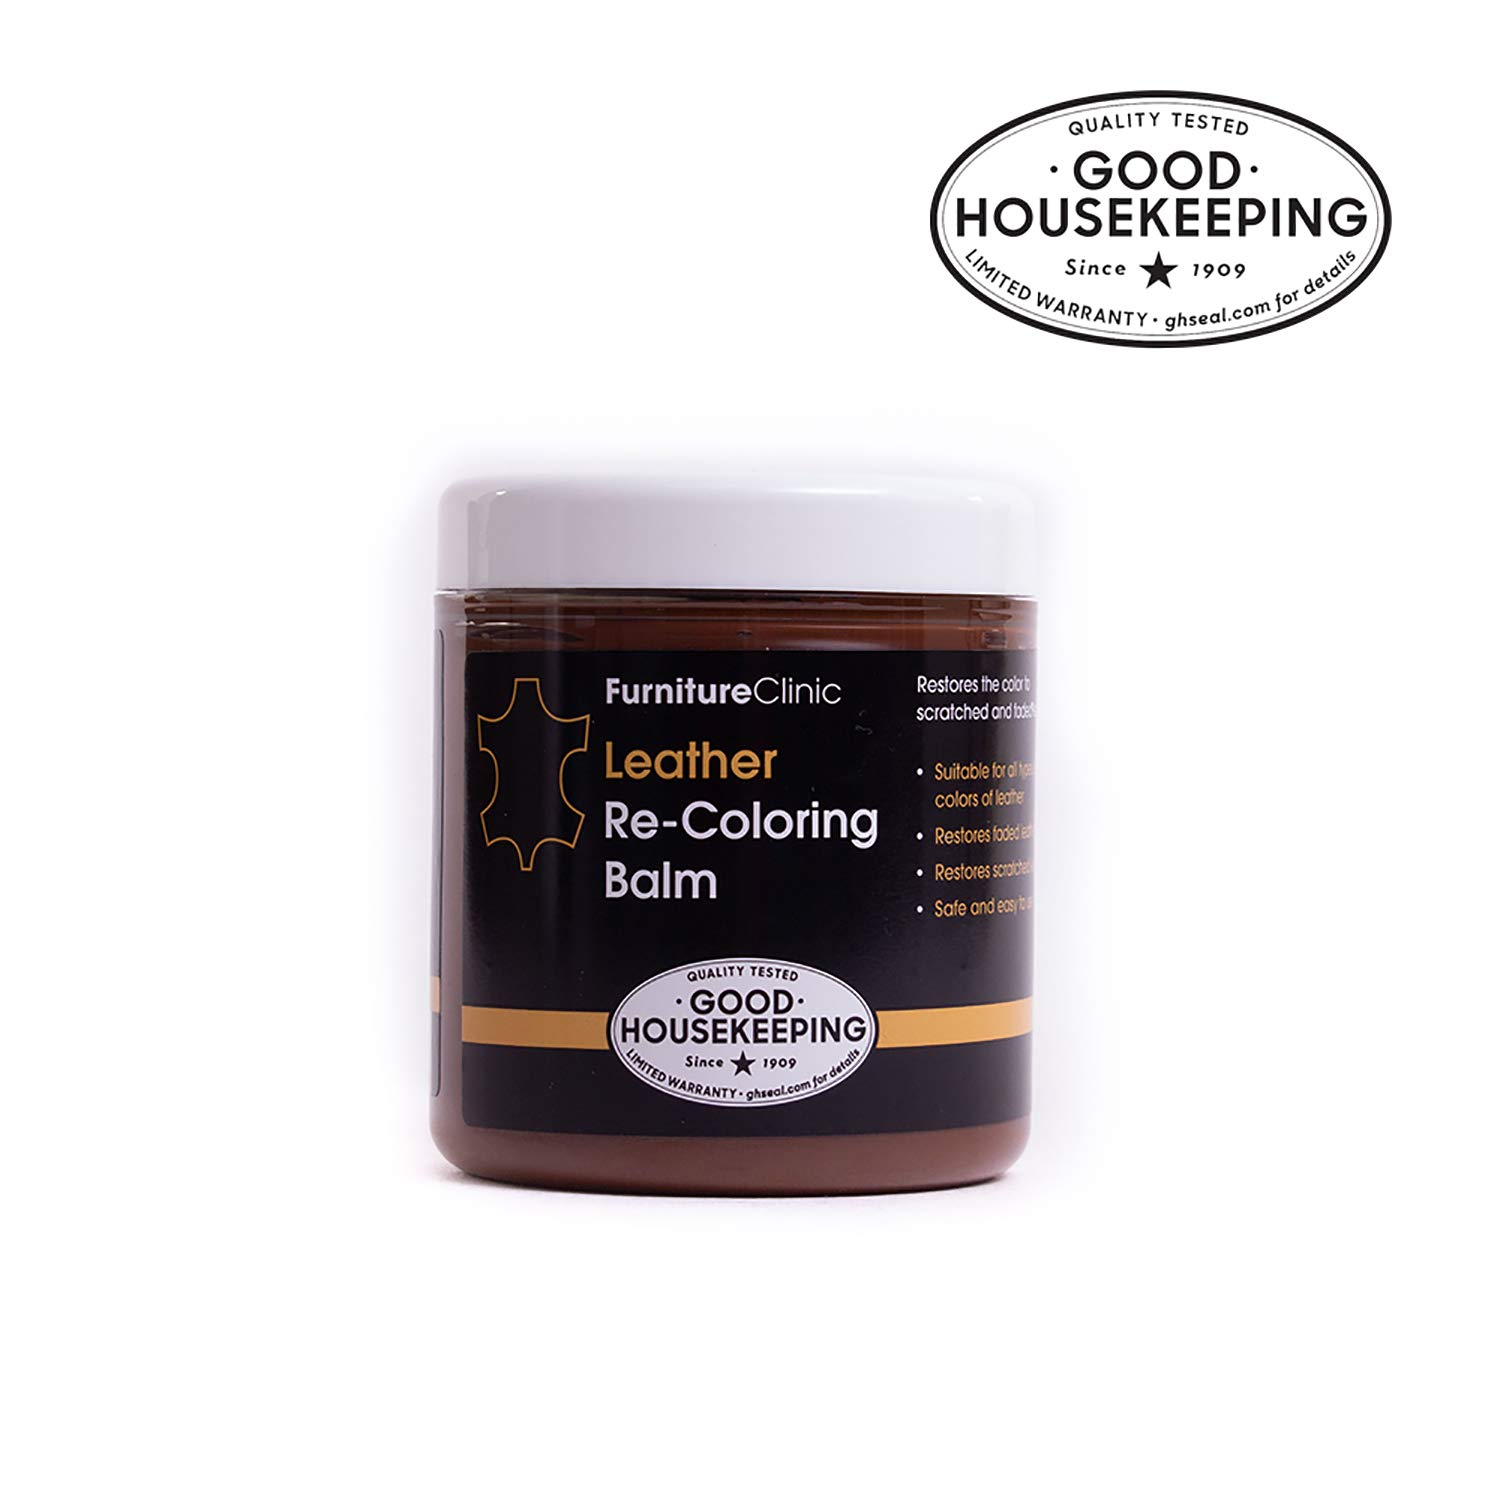 Furniture Clinic Leather Recoloring Balm - Renew, Restore & Repair Color to Faded and Scratched Leather   21 Color Choices, Works on Couches, Car Seats, Clothing & Purses - 8.5 Fl. Oz (Dark Brown)